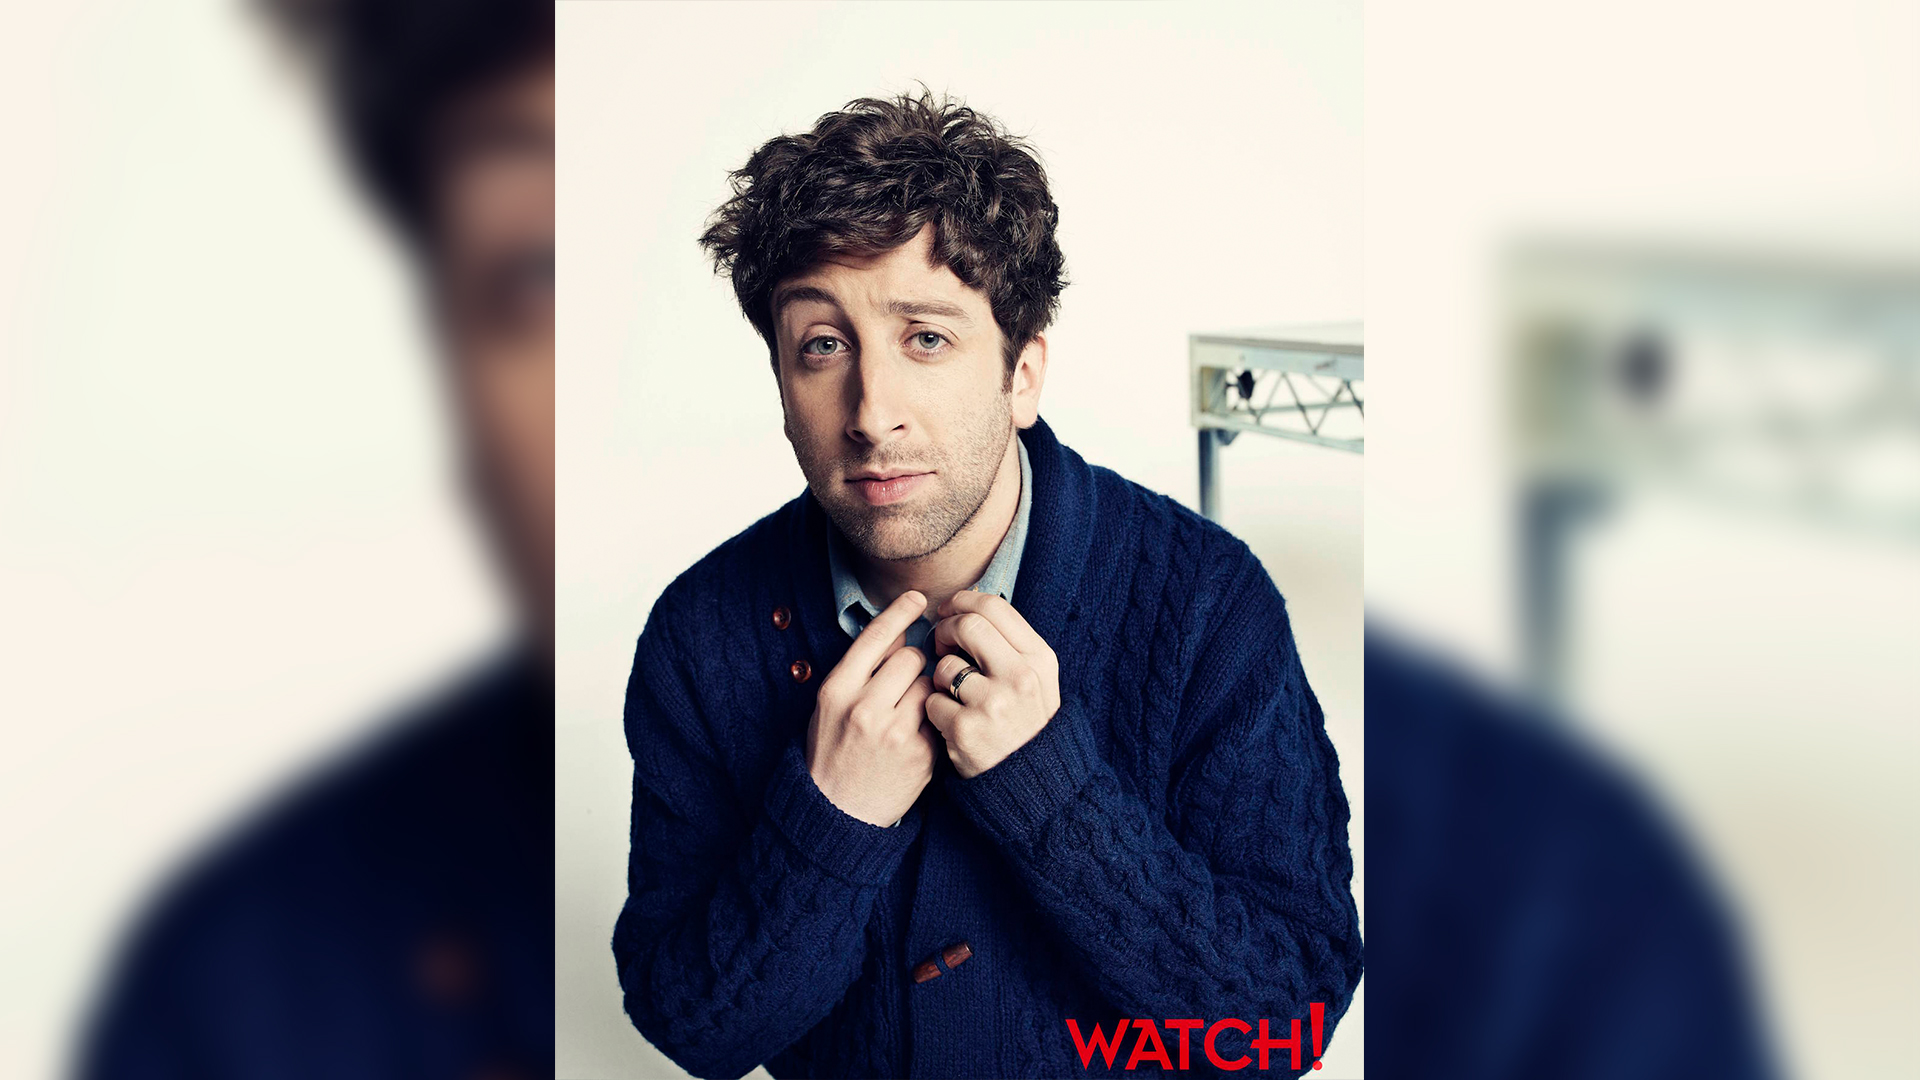 Simon Helberg is well-groomed